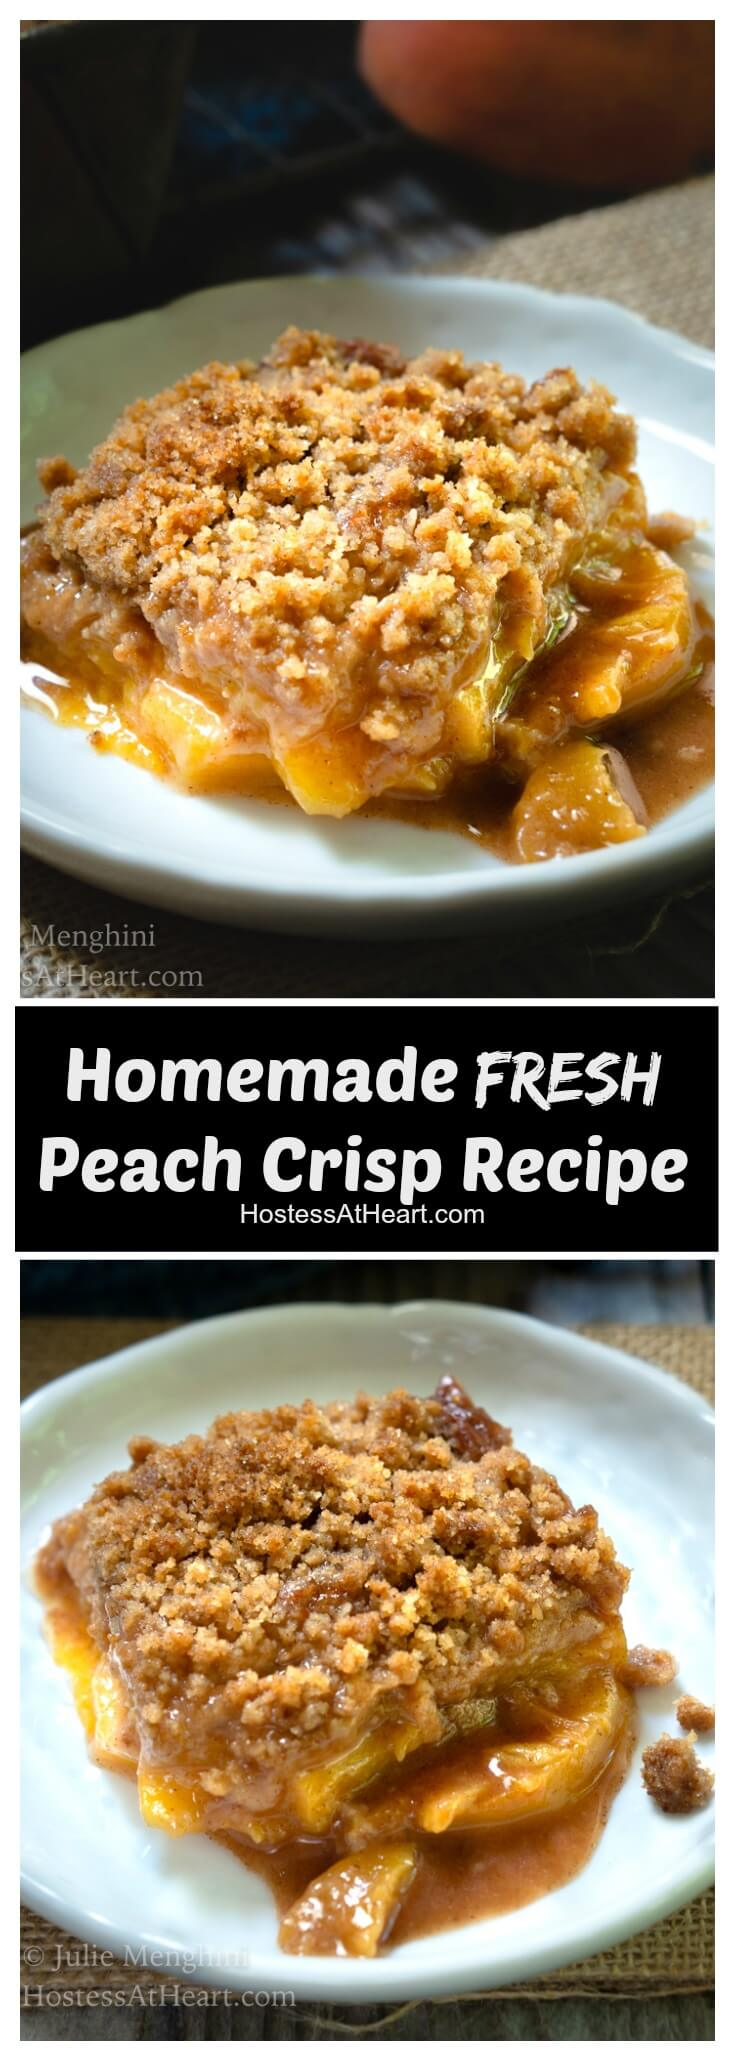 Homemade Fresh Peach Crisp is a combination of velvety sweet peaches, warm cinnamon, and brown sugar all under a layer of buttery crisp crumble. #peachcrisp #peachdessert #peachrecipes #peaches #peachcrisprecipe #dessert #fruitcrisp #recipes